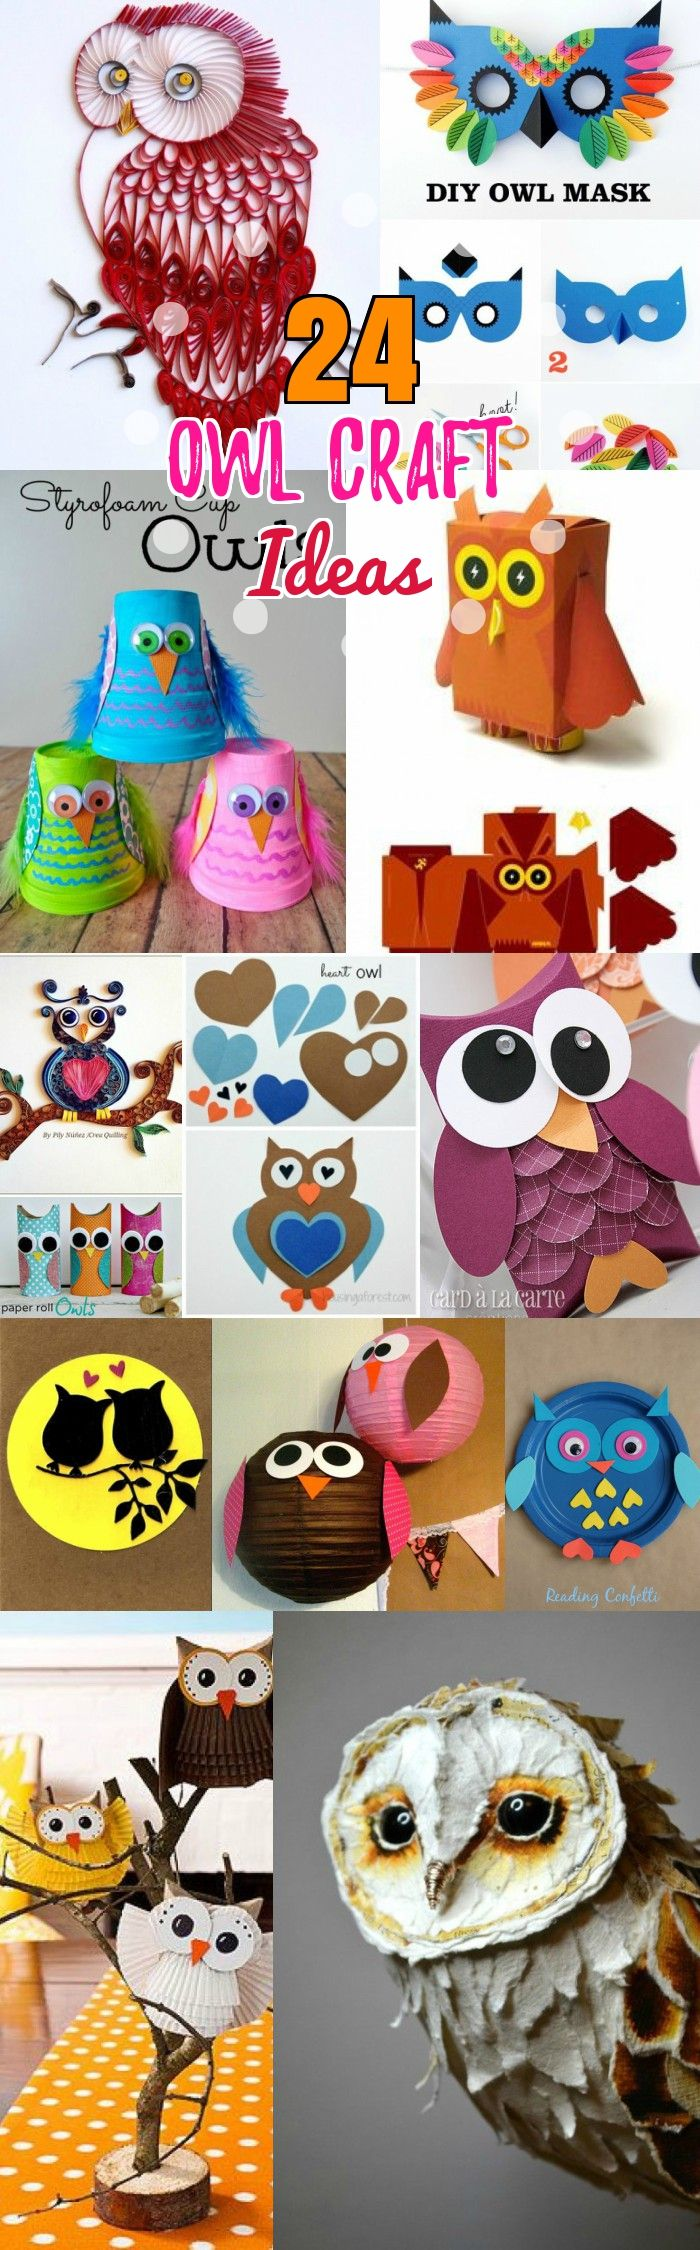 owl paper plates Owl crafts and learning activities for kids great for homeschools and preschools, owl crafts made from cups, paper plates and paper bags, owl craft for popular.